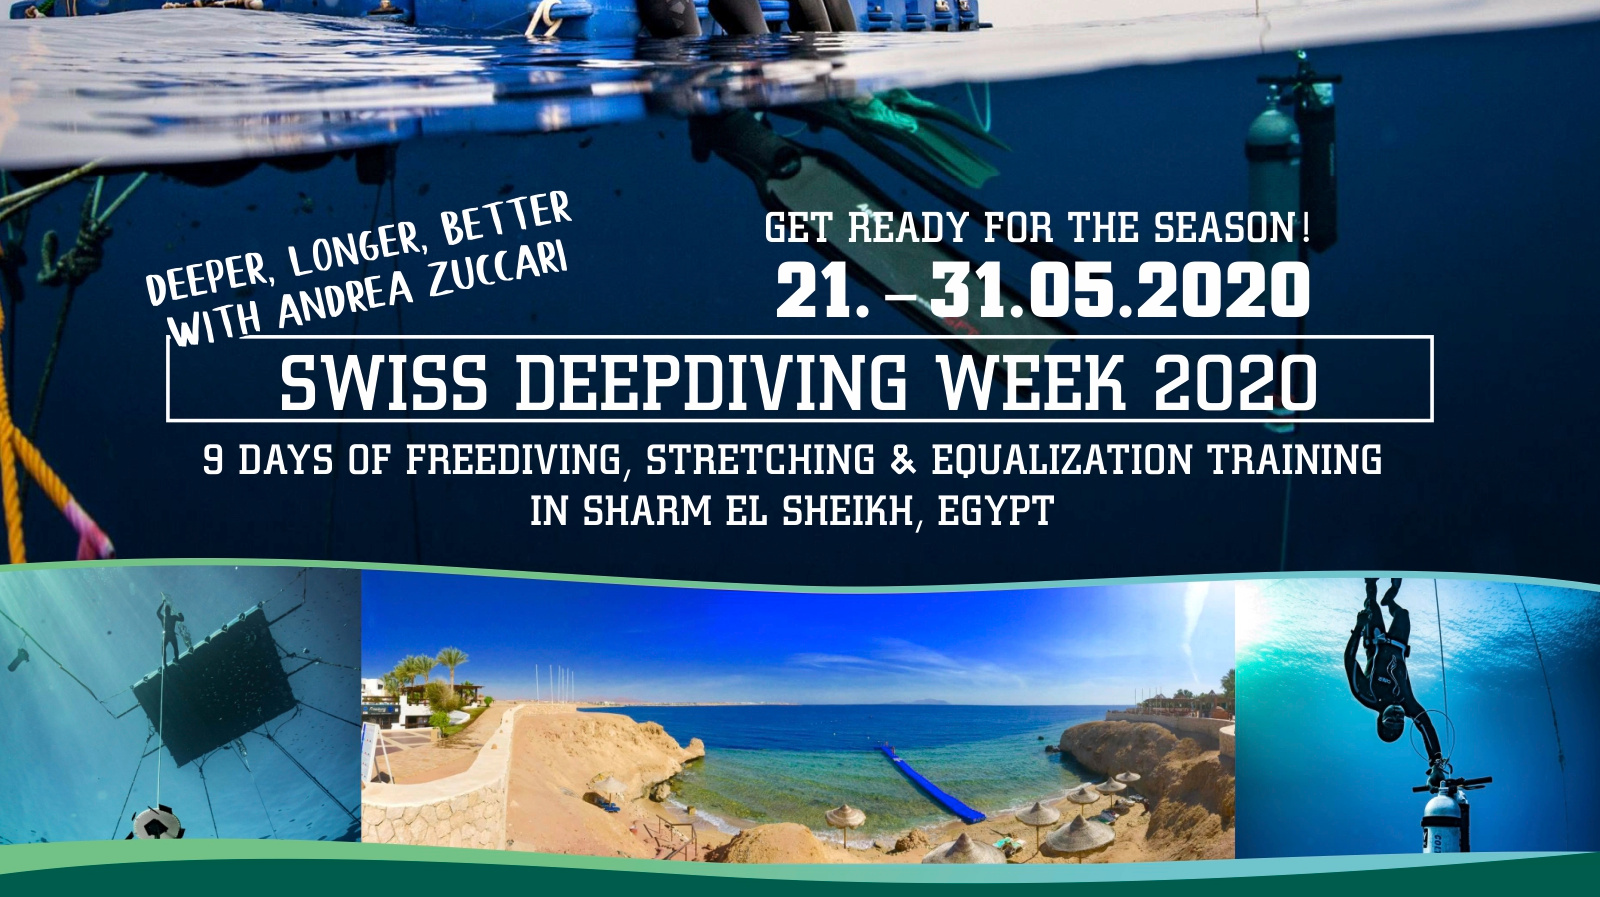 Swiss Deepdiving Week 2020